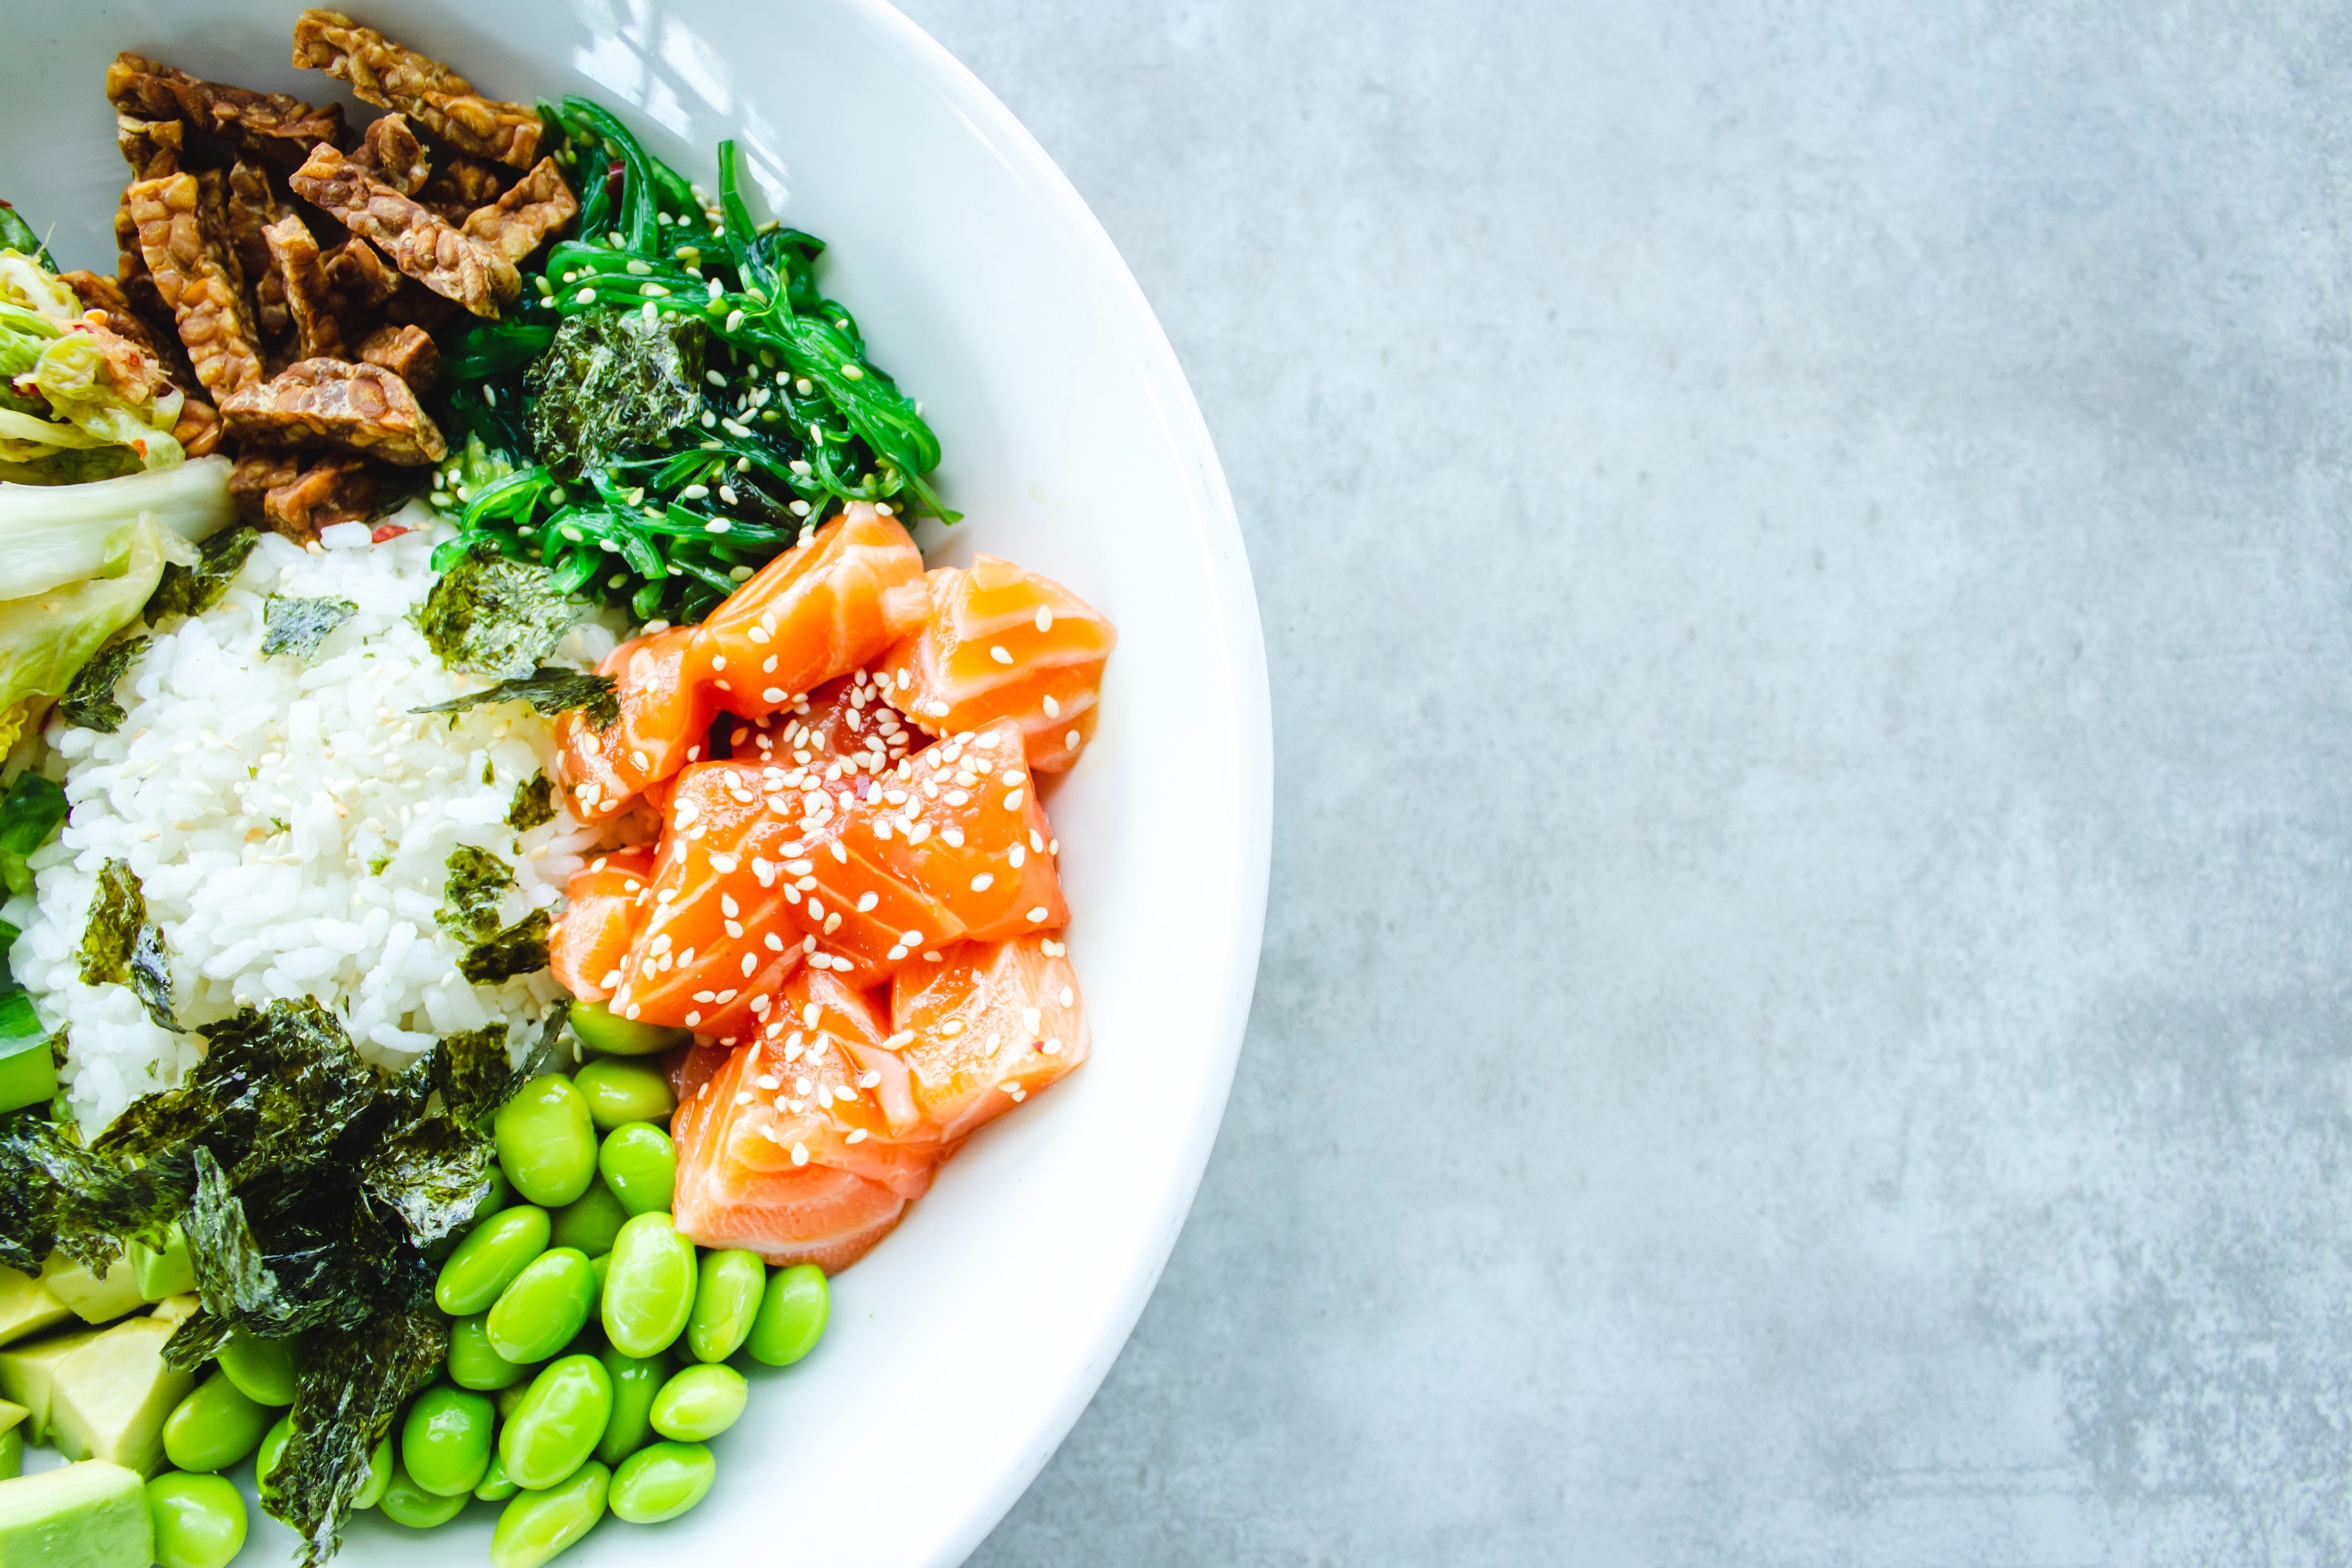 A healthy balanced meal with salmon and vegetables